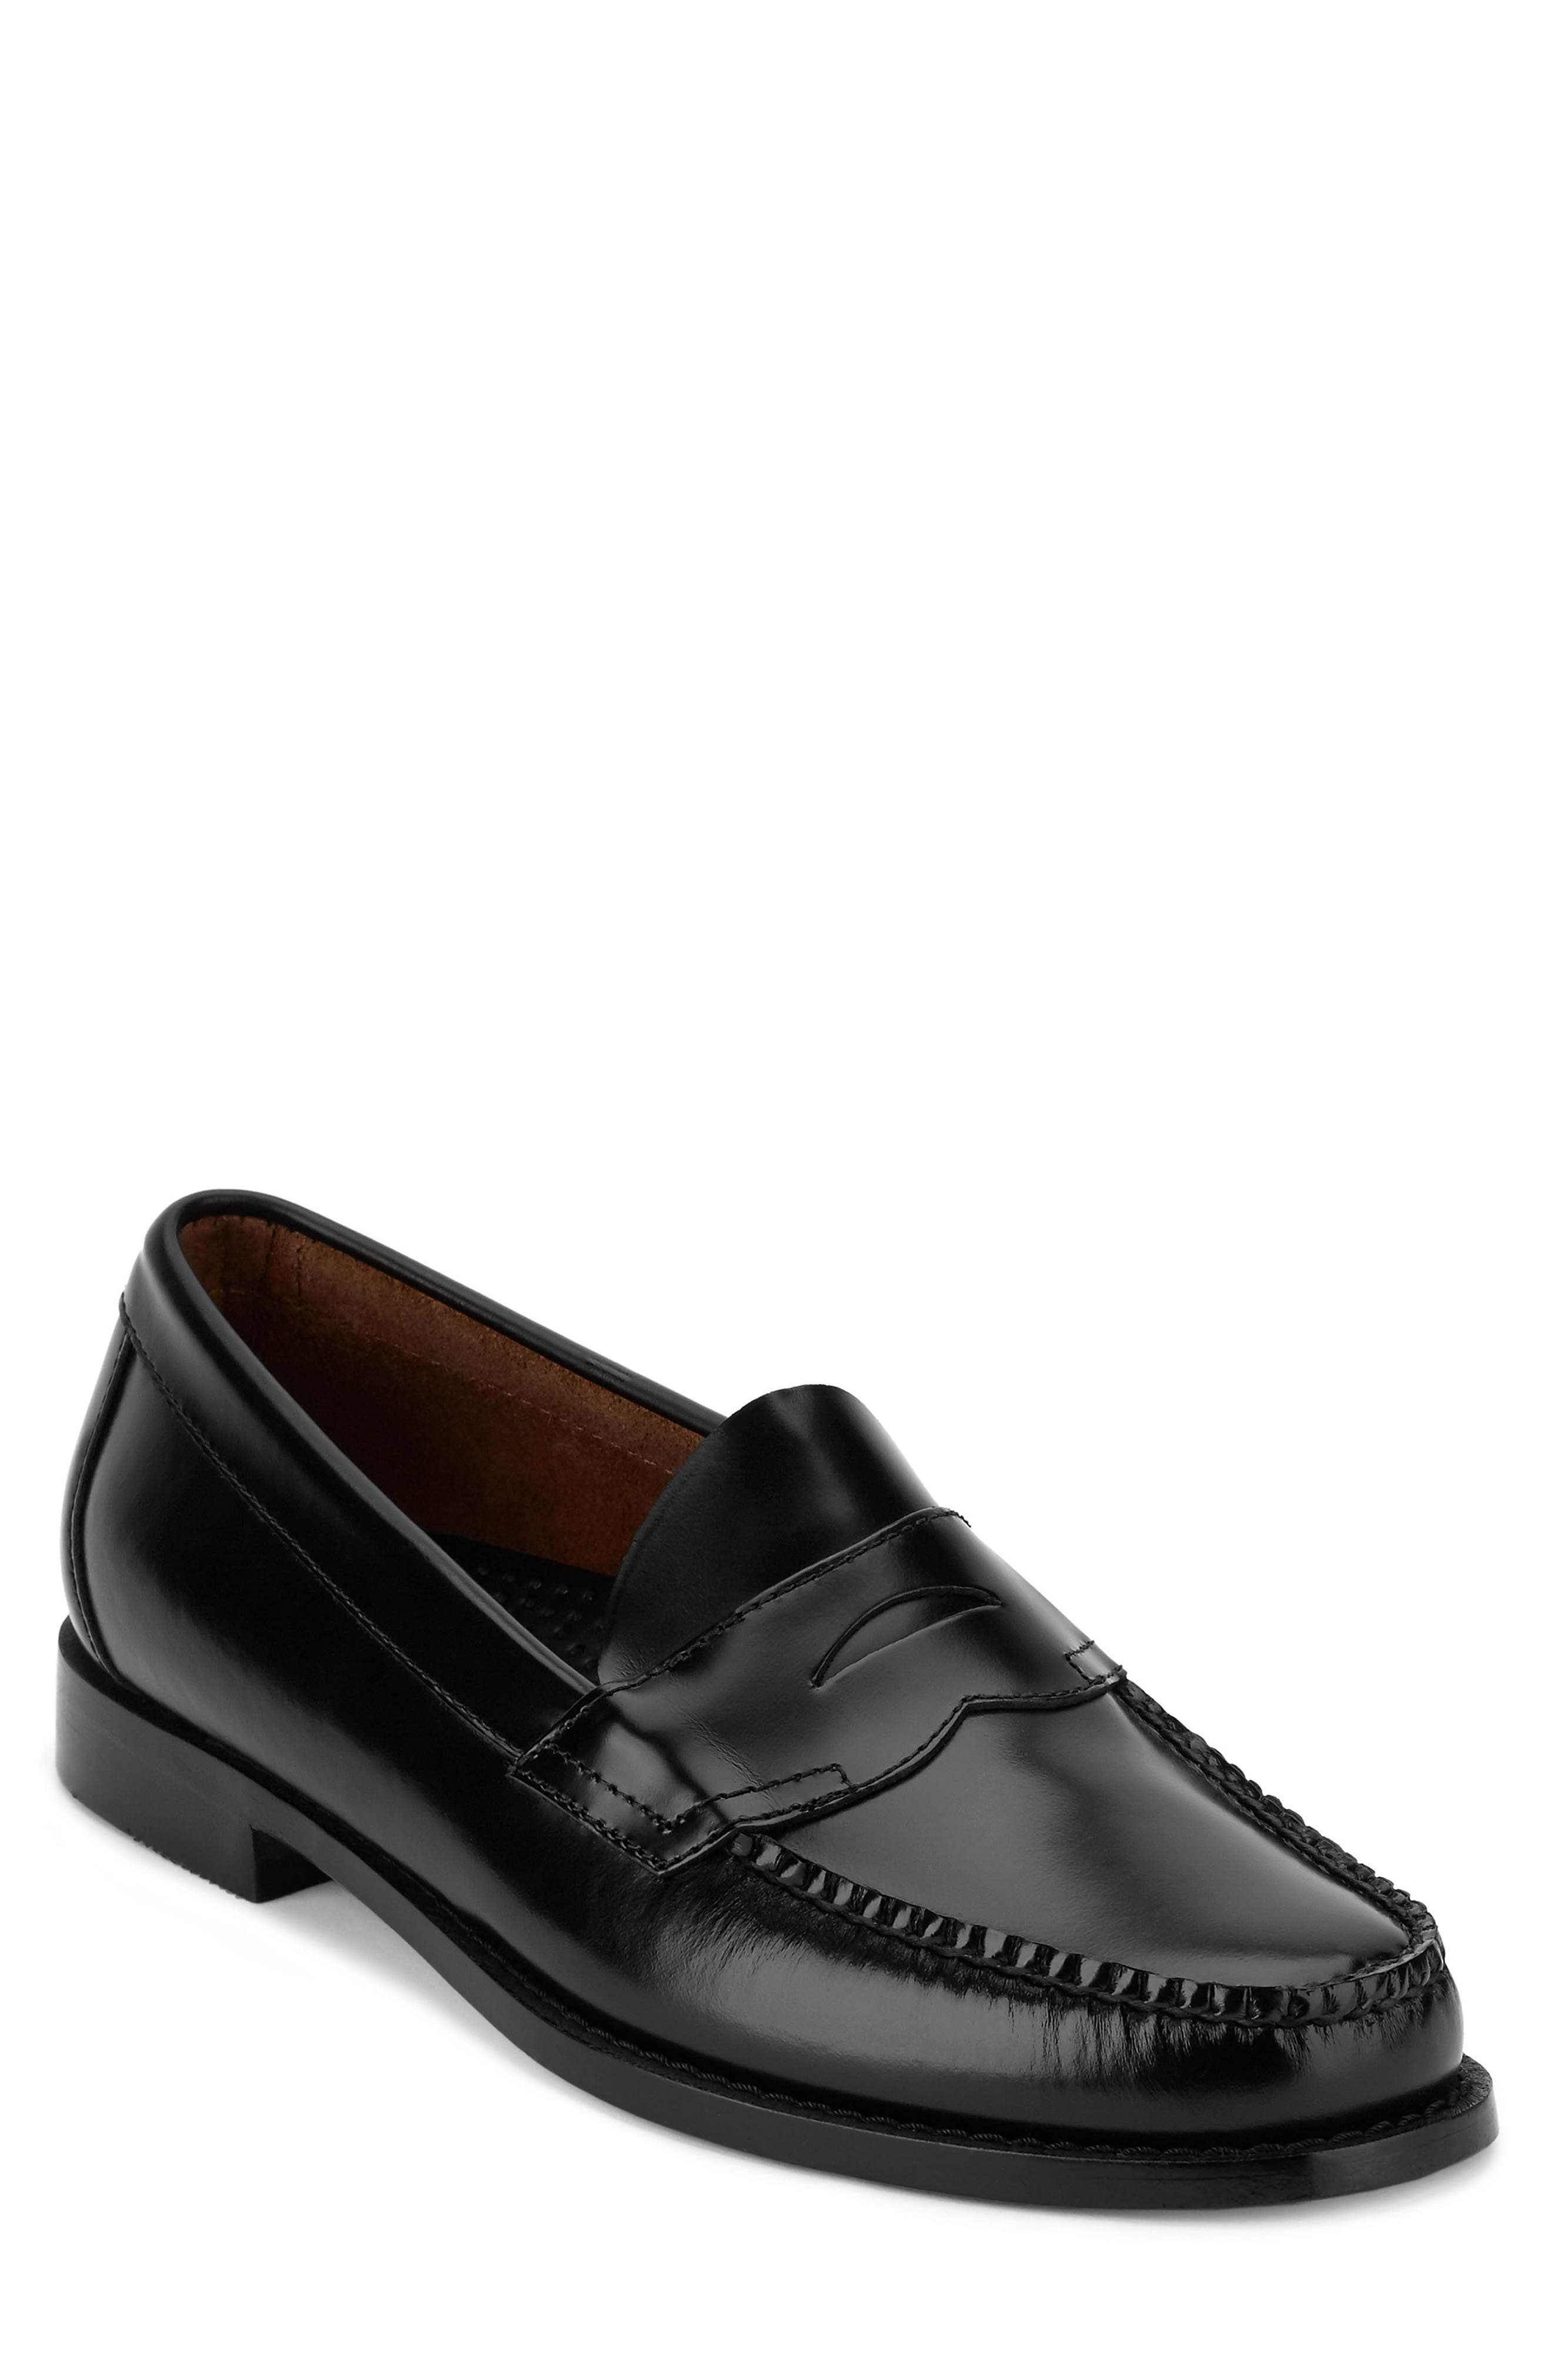 Logan Penny Loafer,                             Main thumbnail 1, color,                             001